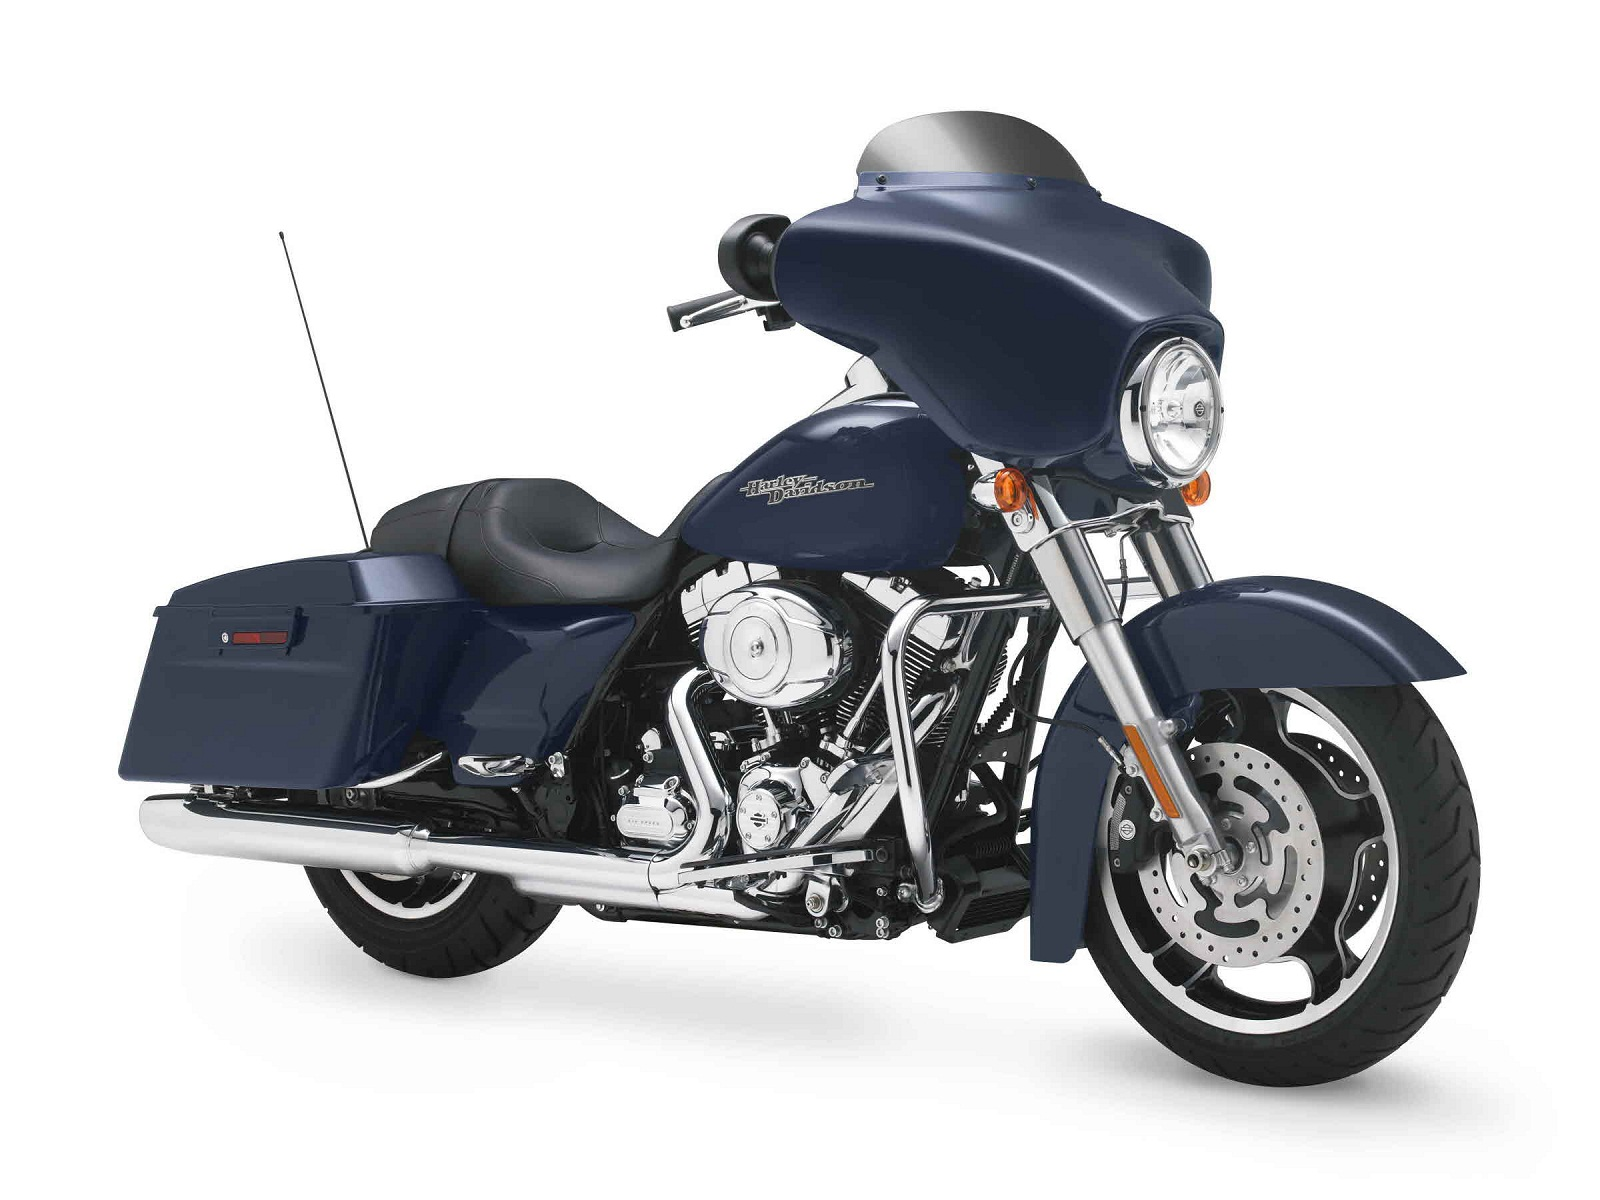 Harley Davidson Touring With 2012 Harley Davidson Touring Flhx Street Glide Top Speed